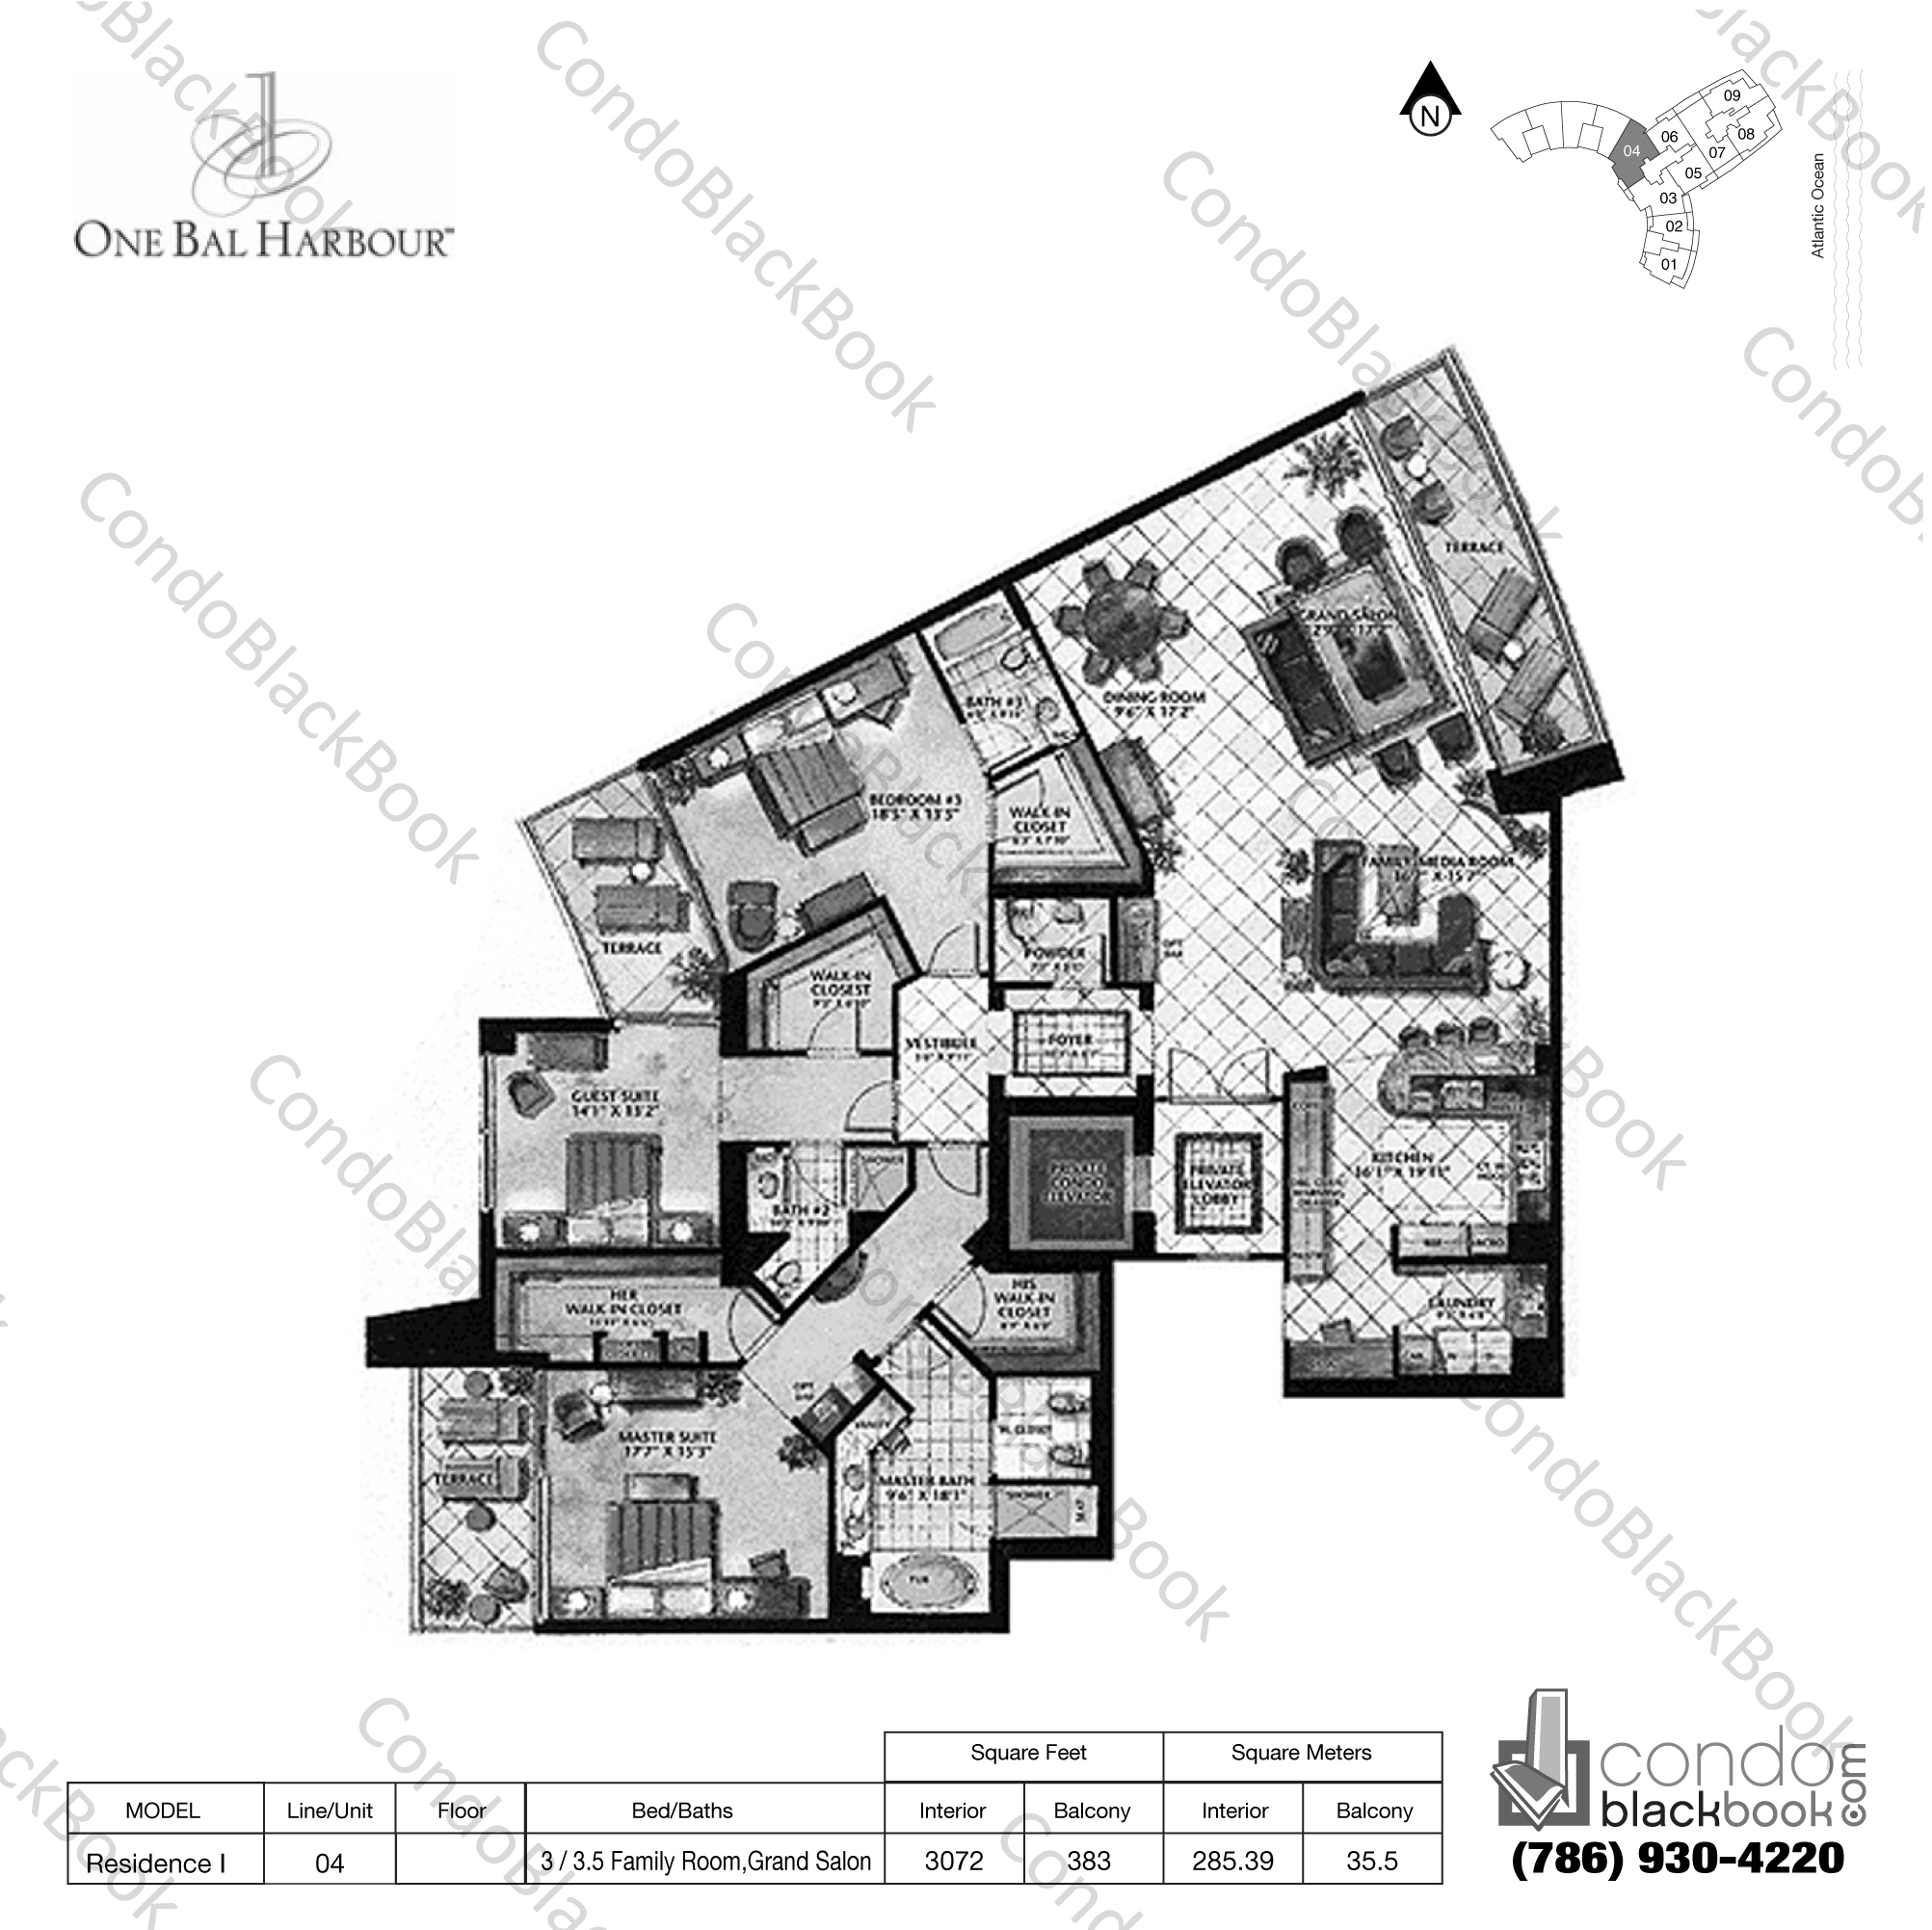 Floor plan for One Bal Harbour Bal Harbour, model Residence I, line 04, 3 / 3.5 Family Room, Grand Salon bedrooms, 3072 sq ft